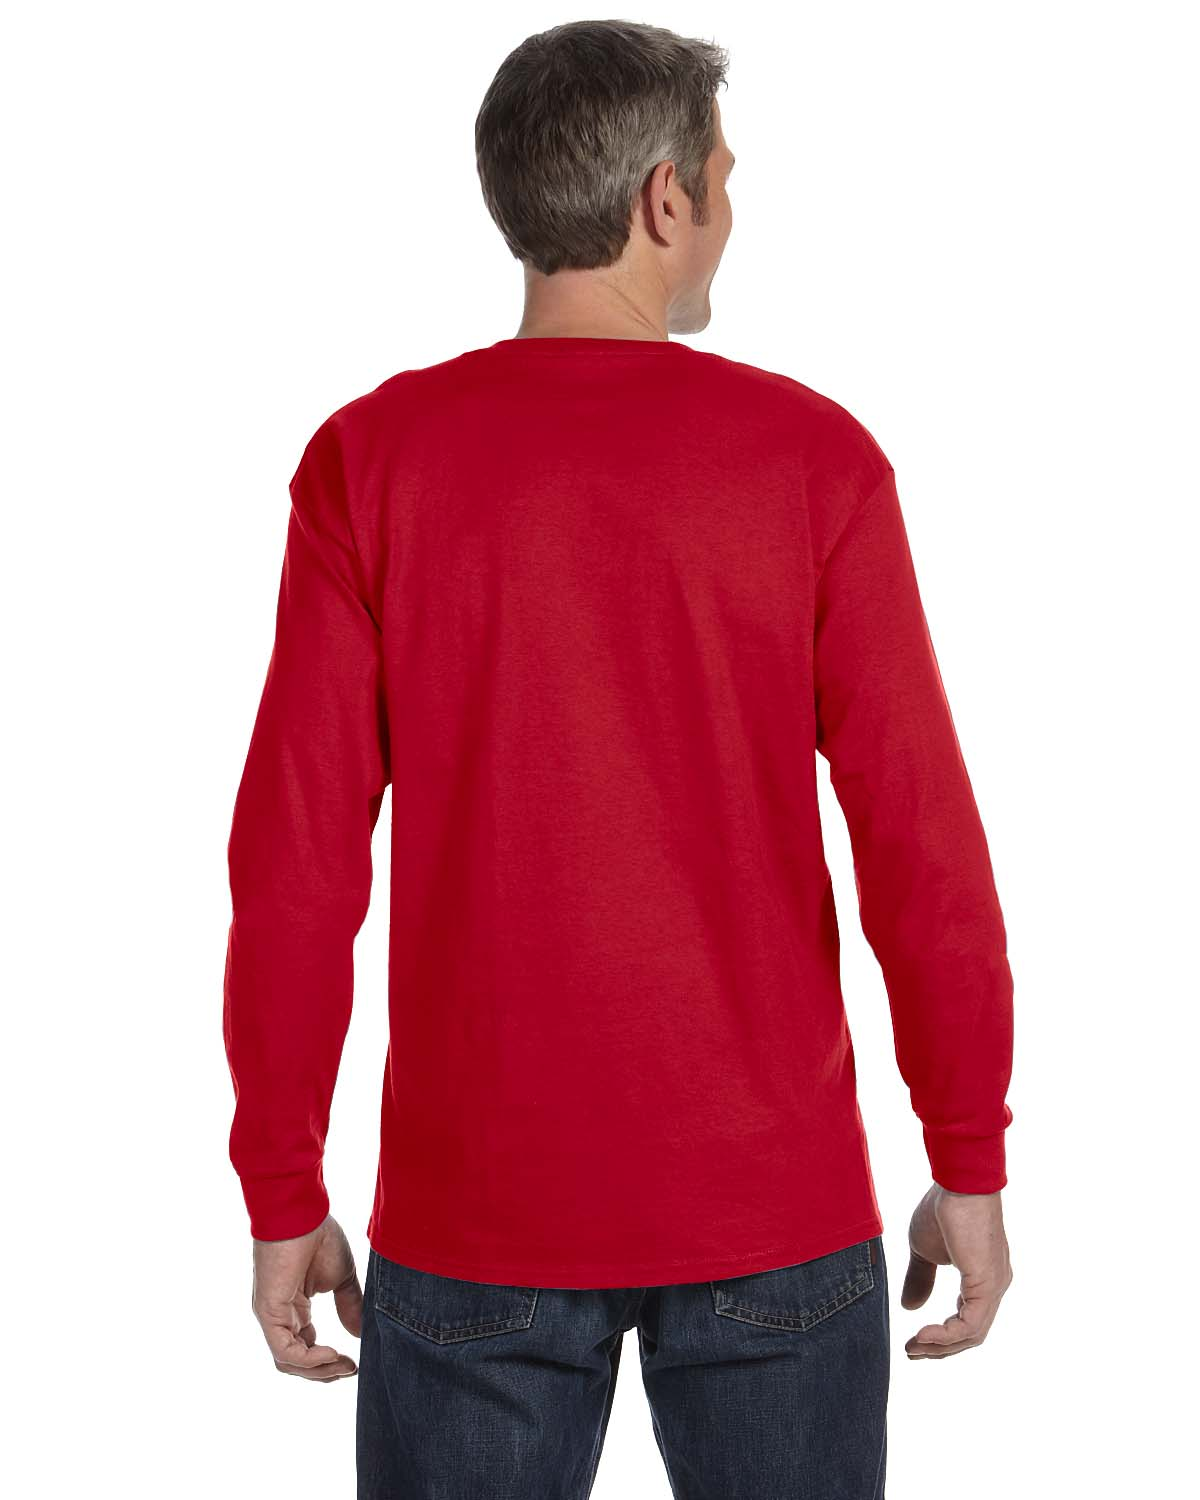 Gildan-Mens-T-Shirt-Long-Sleeve-Heavy-Cotton-5-3-oz-S-XL-R-G540-5400 thumbnail 41